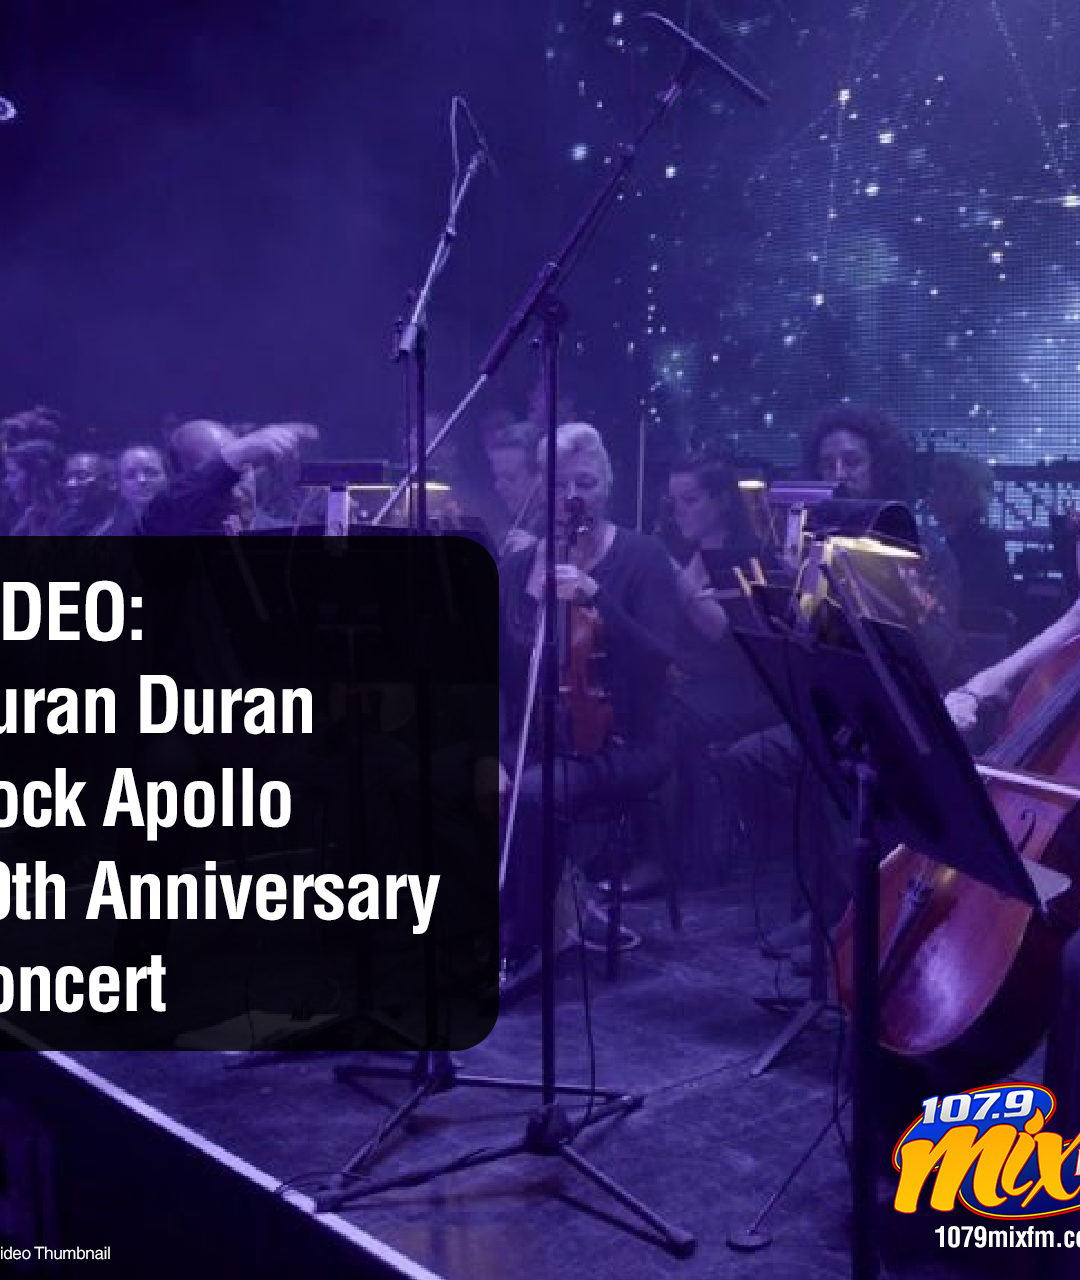 VIDEO: Duran Duran Rock Apollo 50th Anniversary Concert